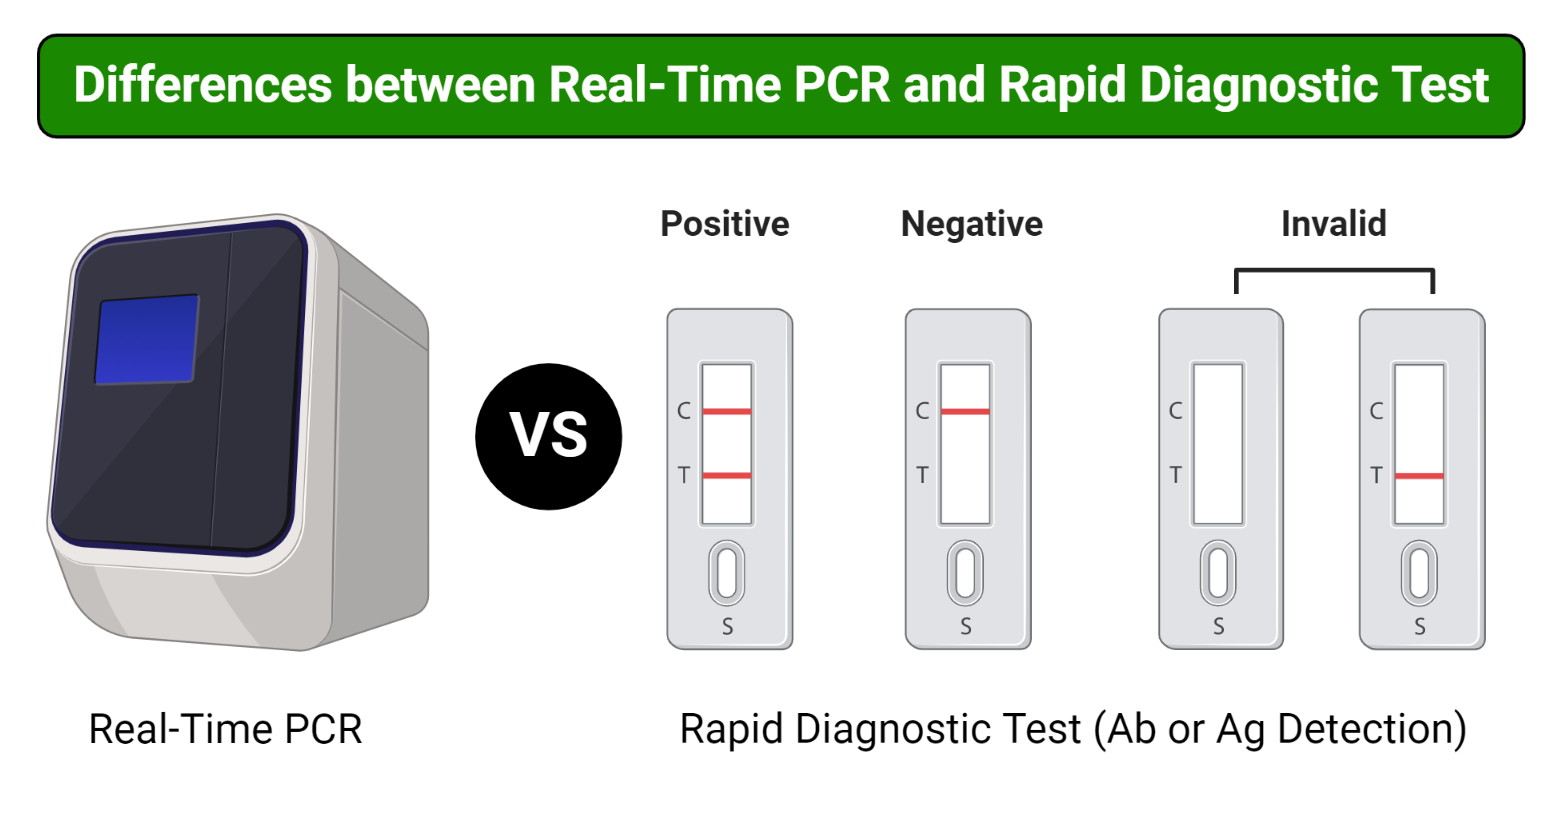 Differences between Real-Time PCR and Rapid Diagnostic Test